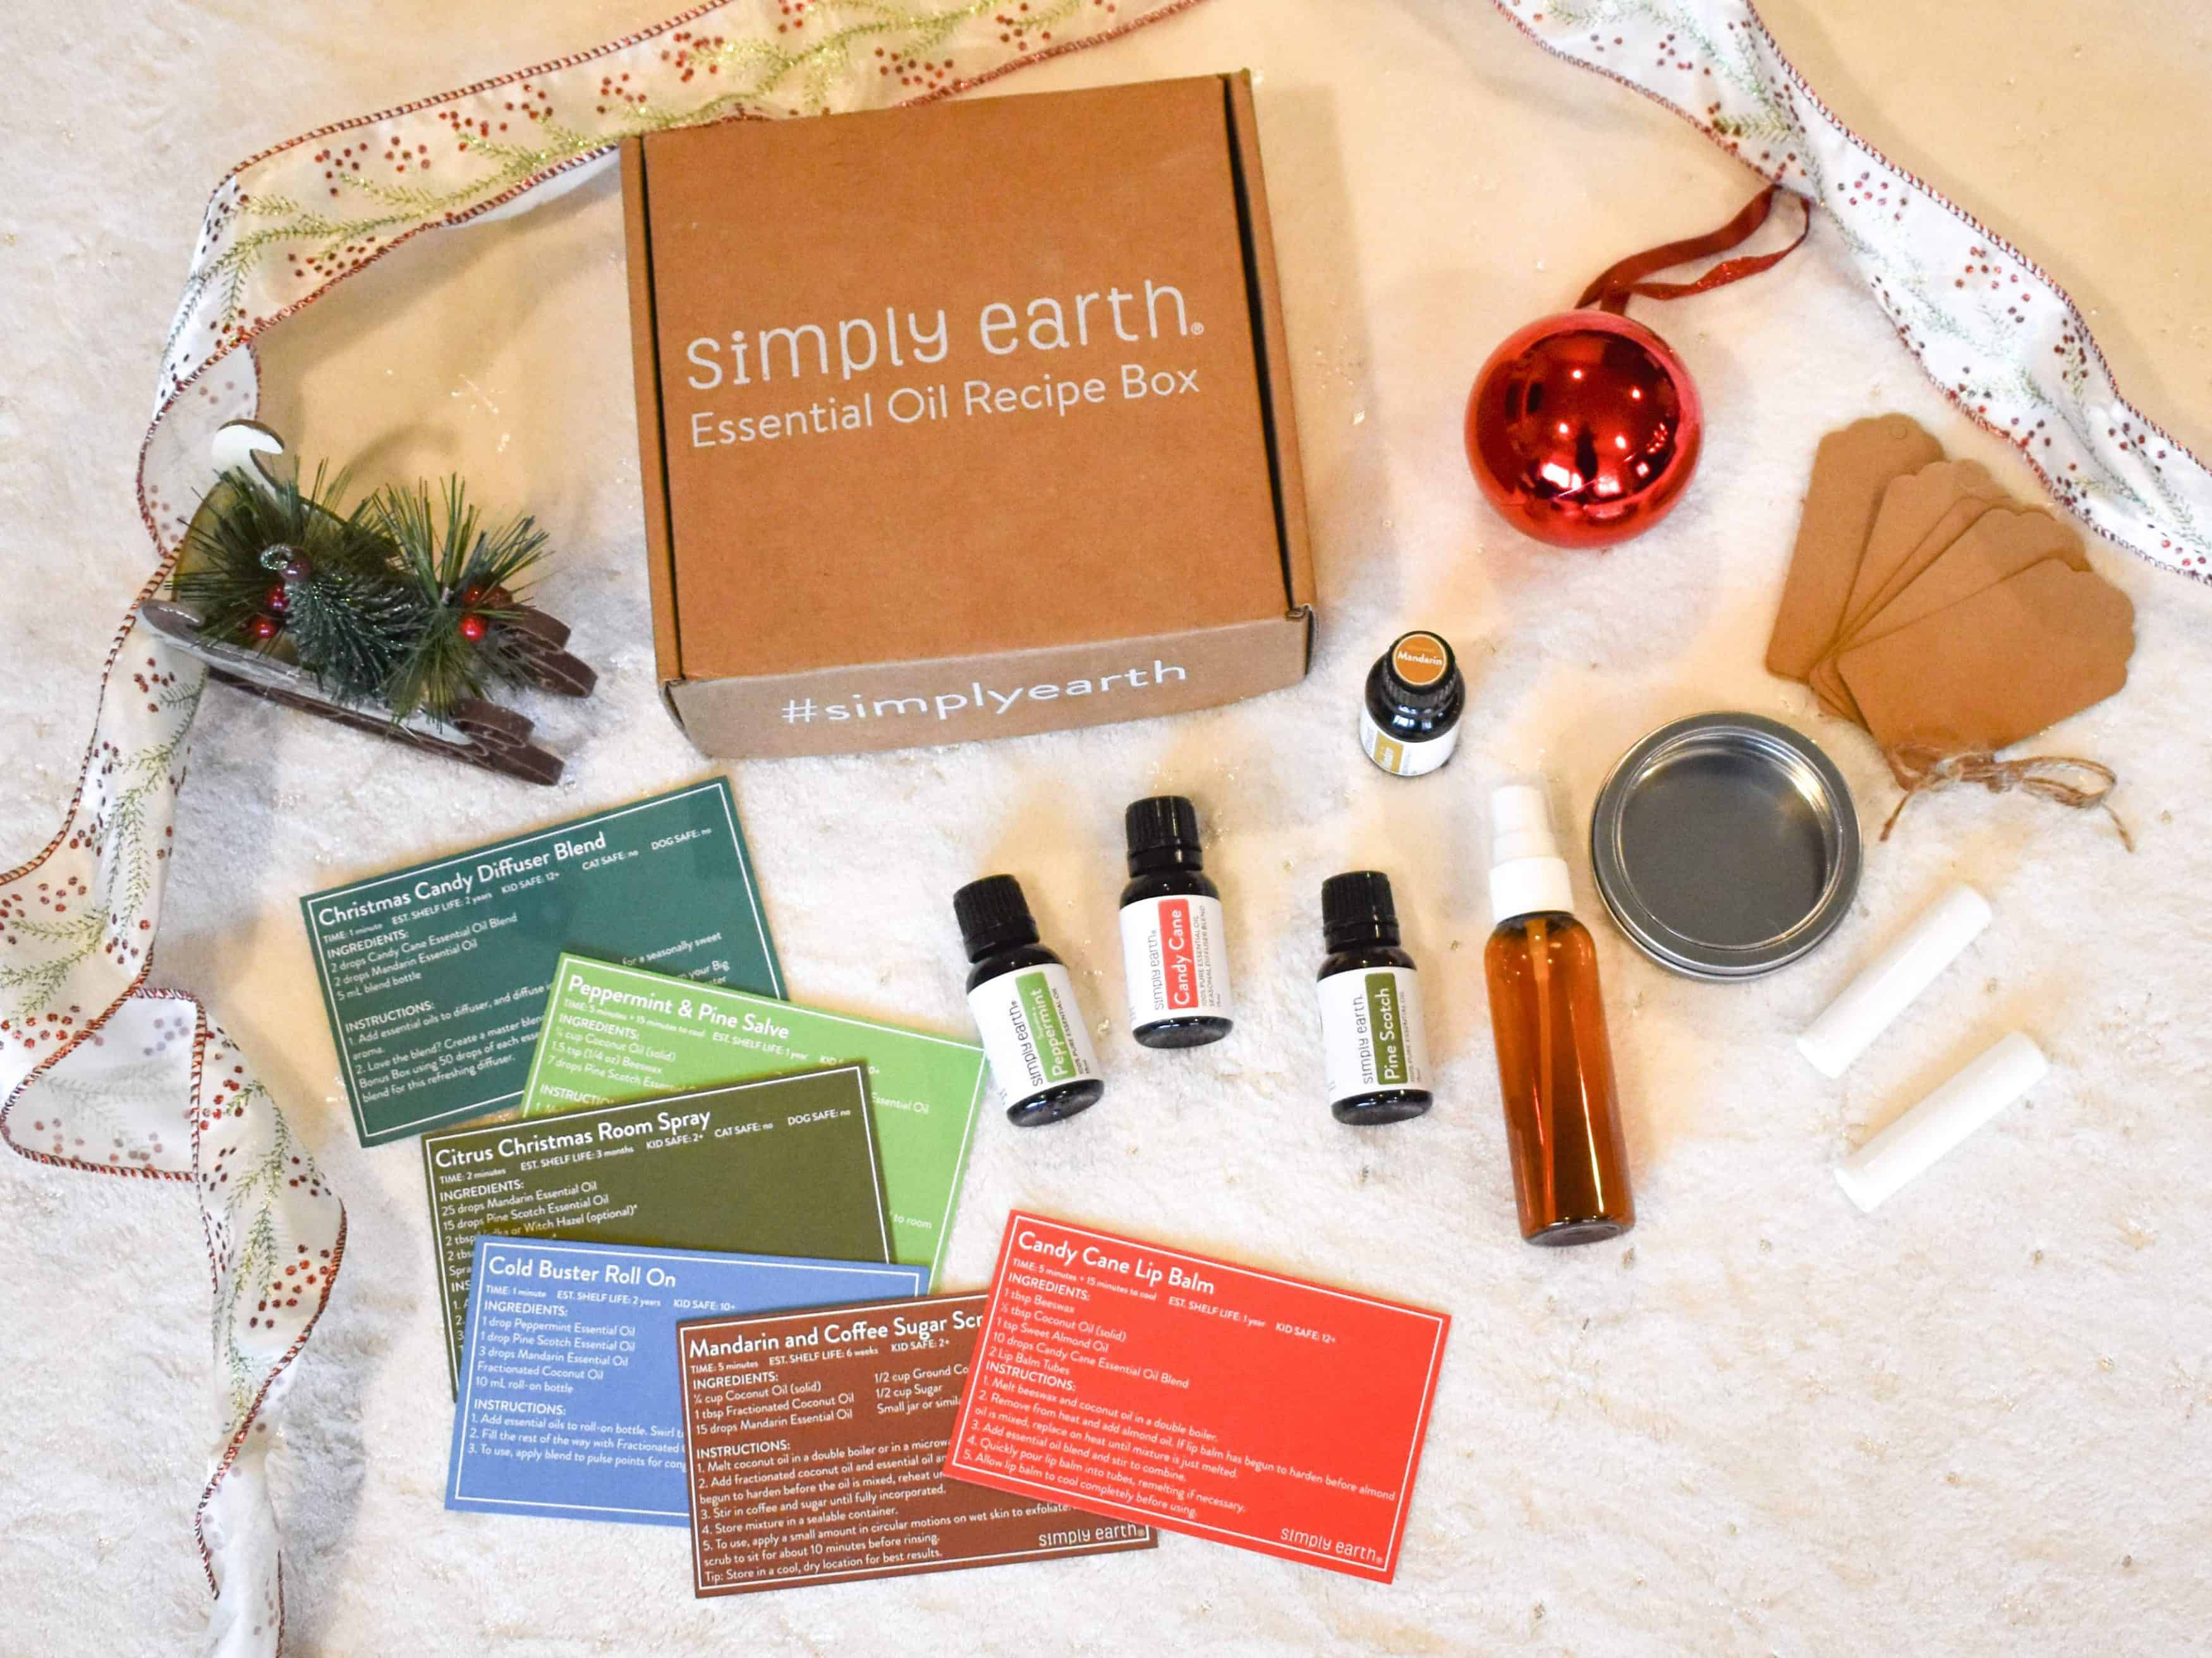 Simply Earth December Recipe Box - Contents